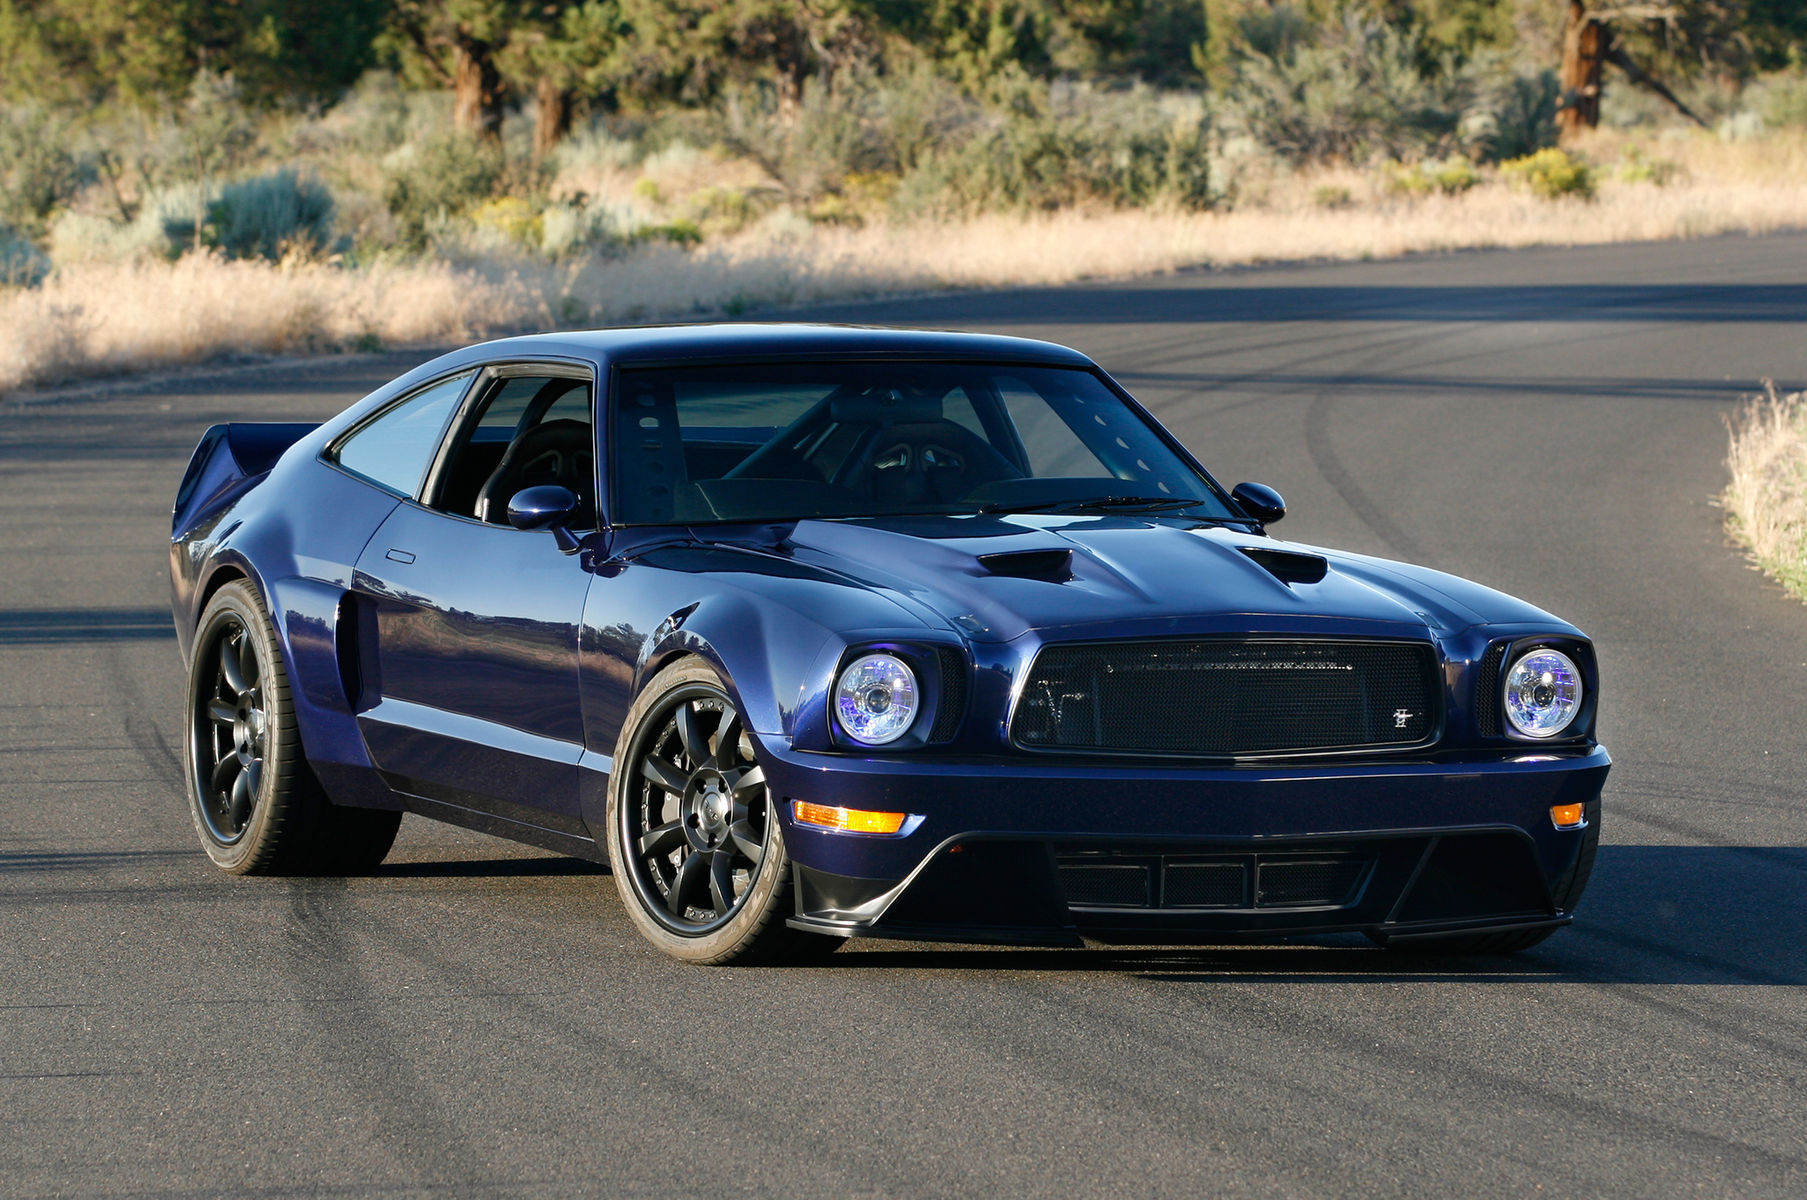 1978 Ford Mustang | Mustang II on Grip Equipped Laguna Wheels - Front Profile